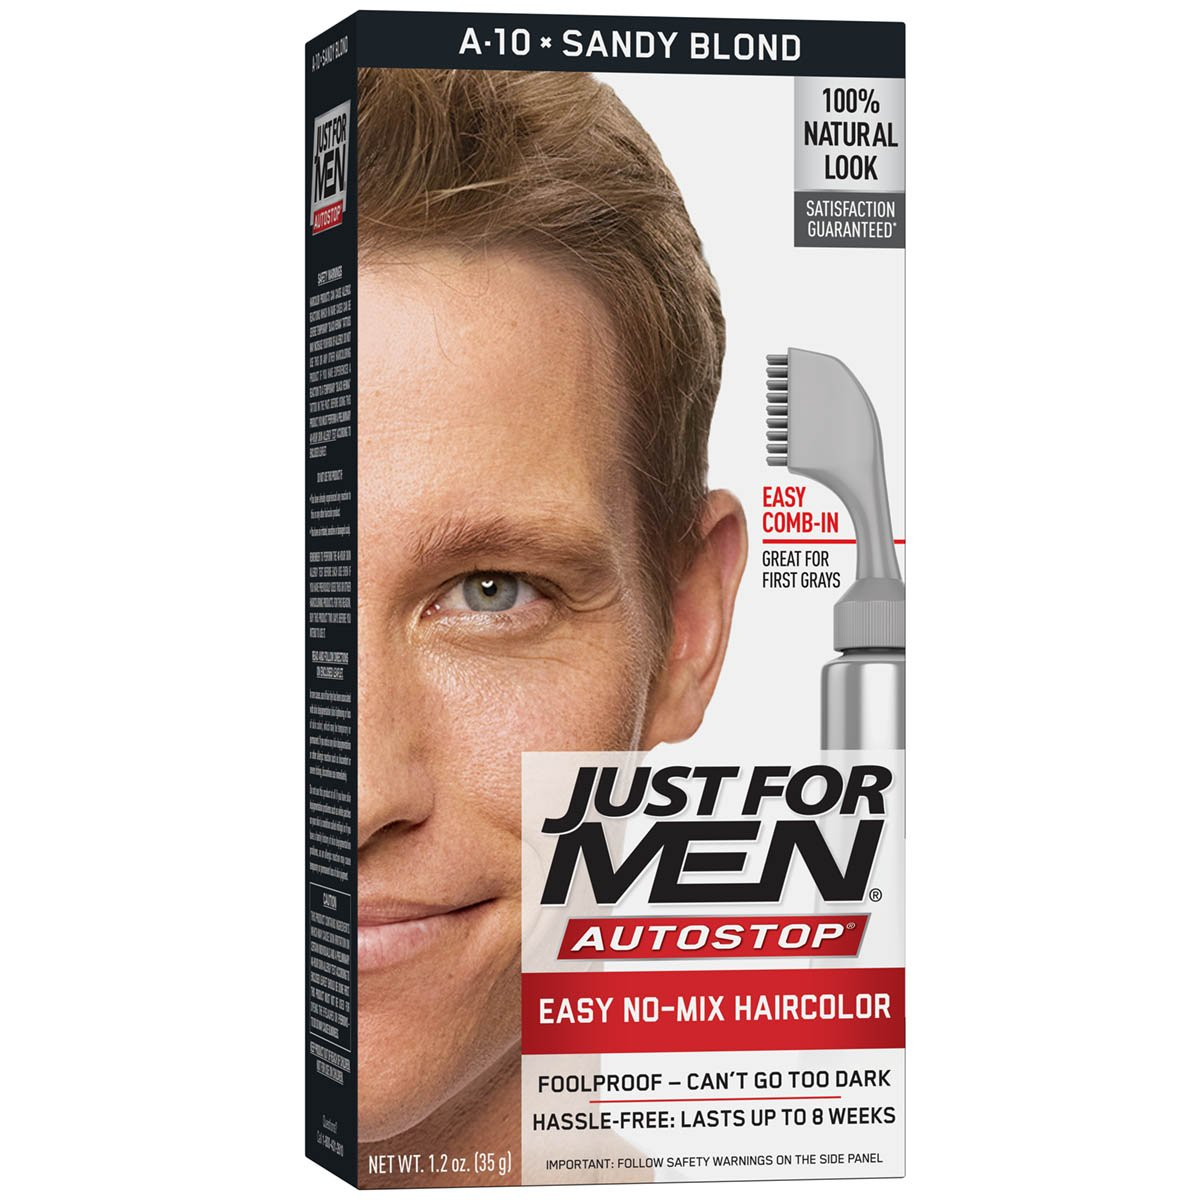 Just For Men AutoStop Men's Comb-In Hair Color, Sandy Blond 011509043146